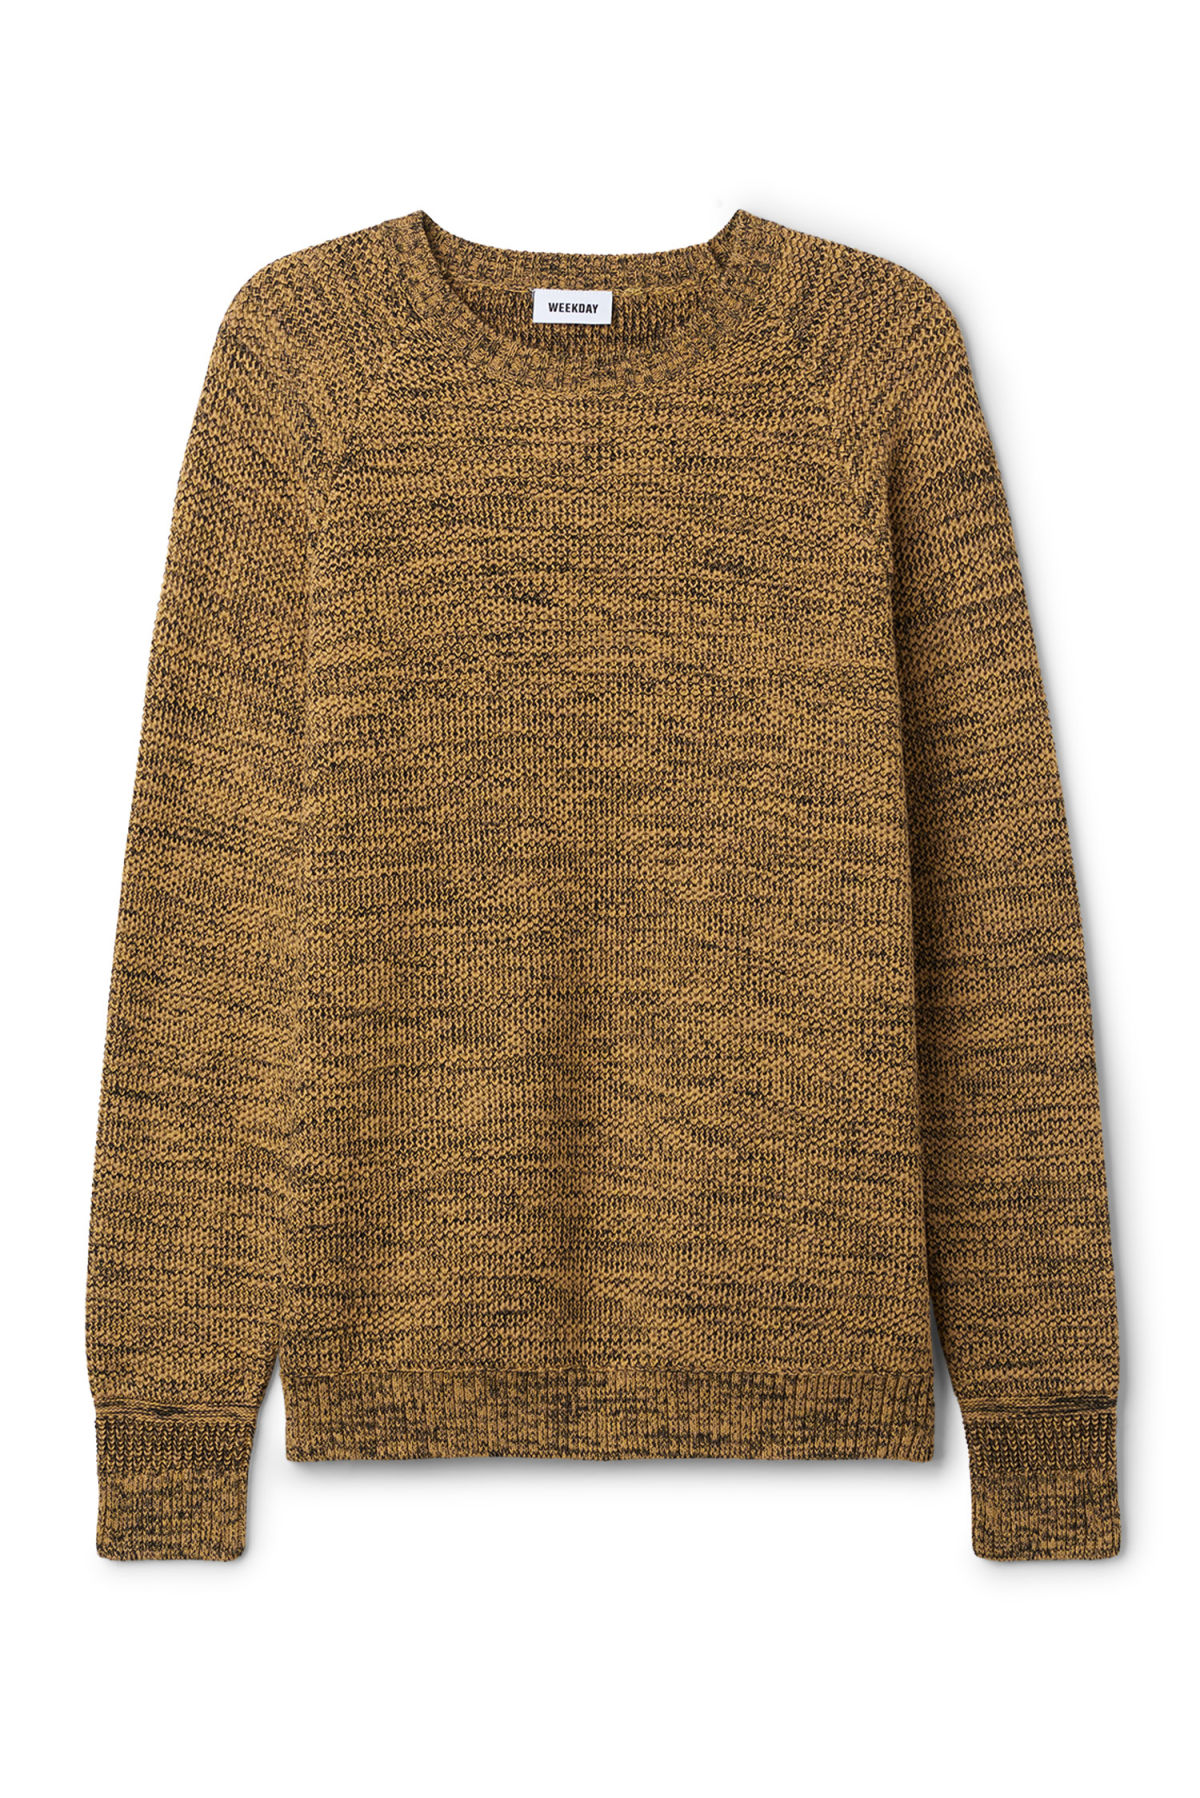 Front image of Weekday cave sweater in yellow